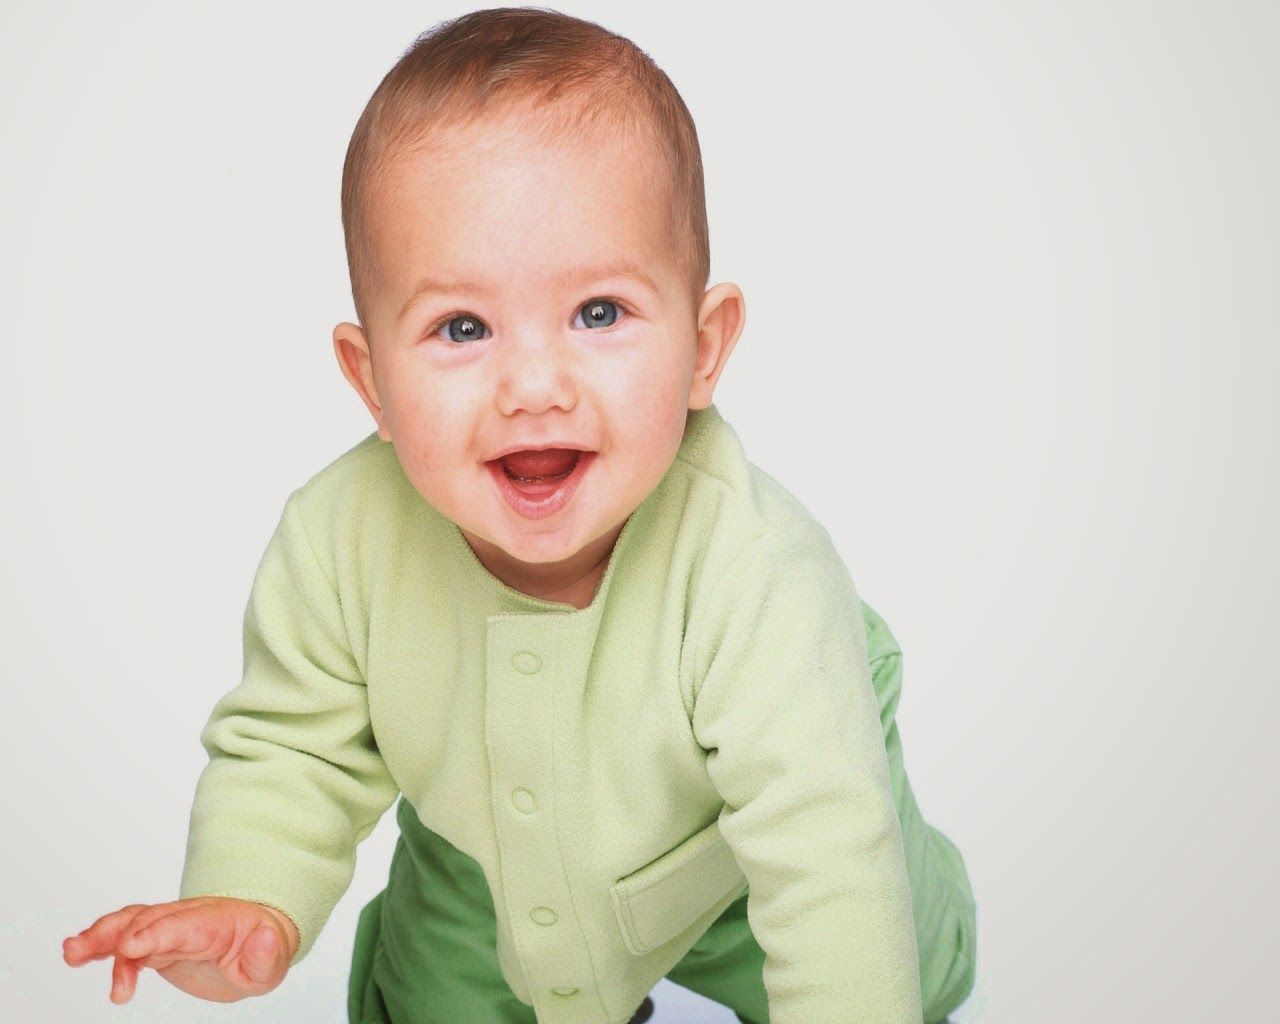 Cute baby wallpapers d funny baby pinterest babies d and hd wallpaper cute baby voltagebd Image collections